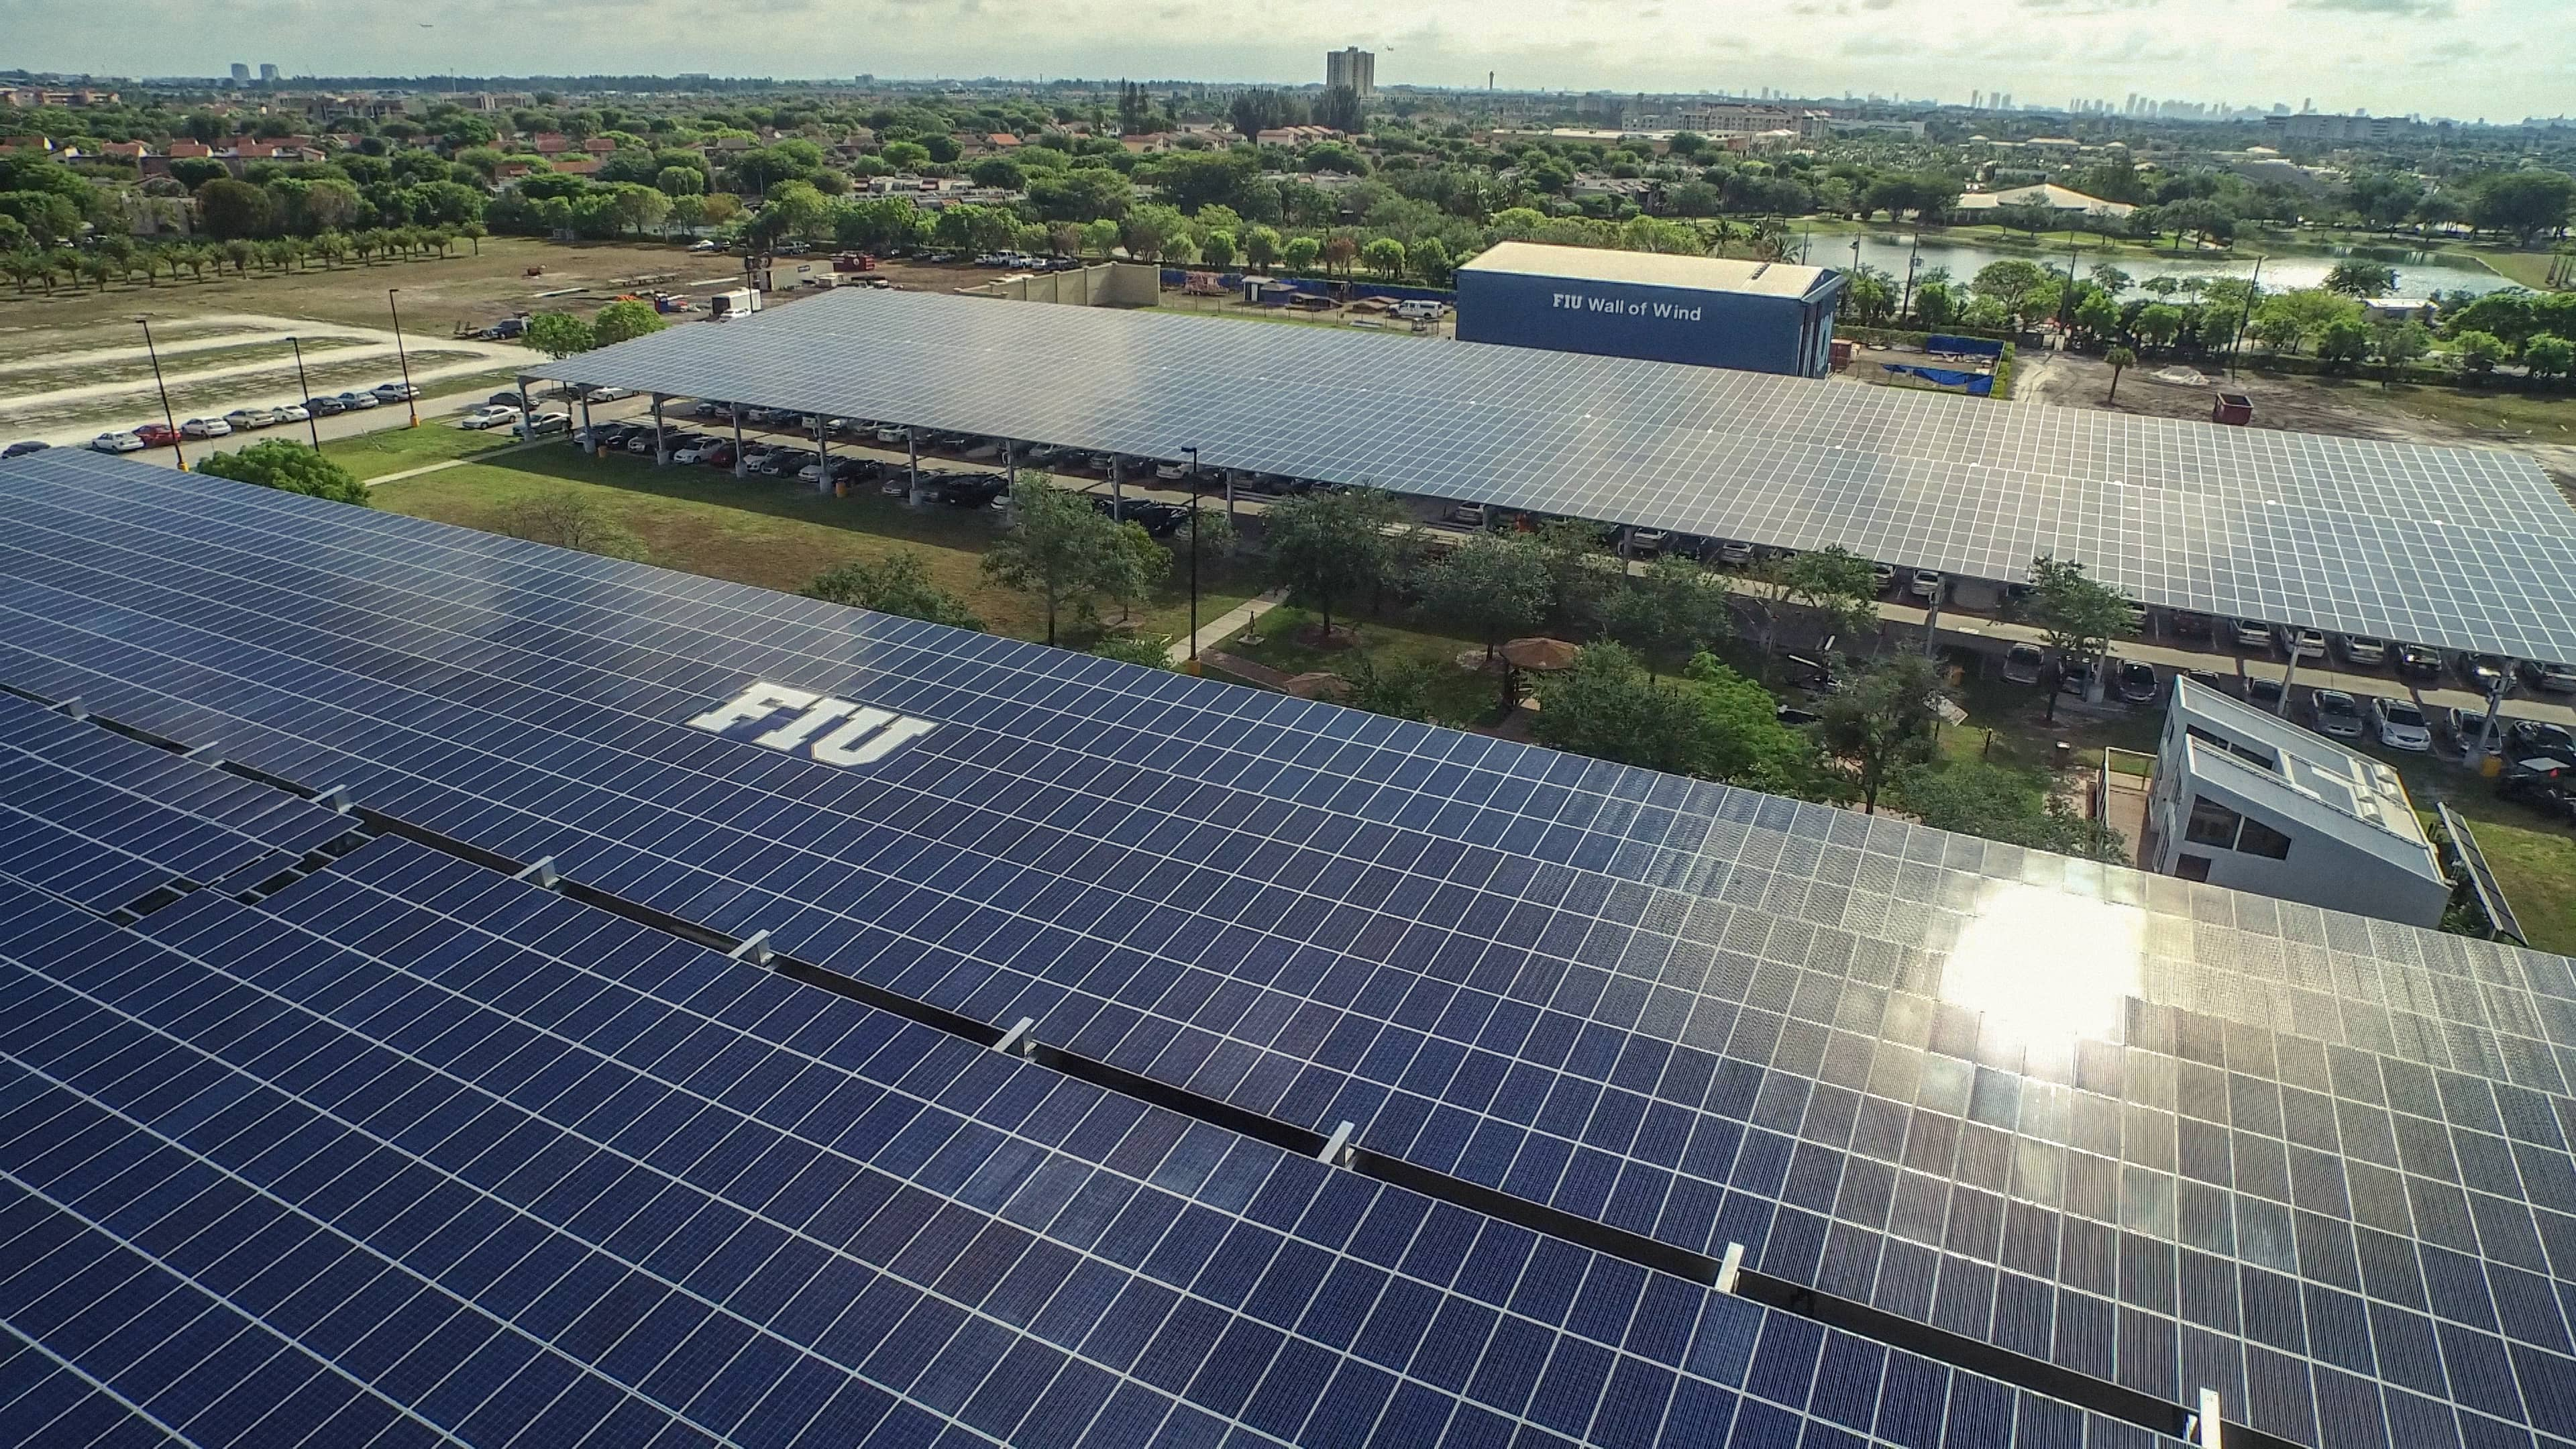 FPL University And Utility Team Up On Solar Research In Florida